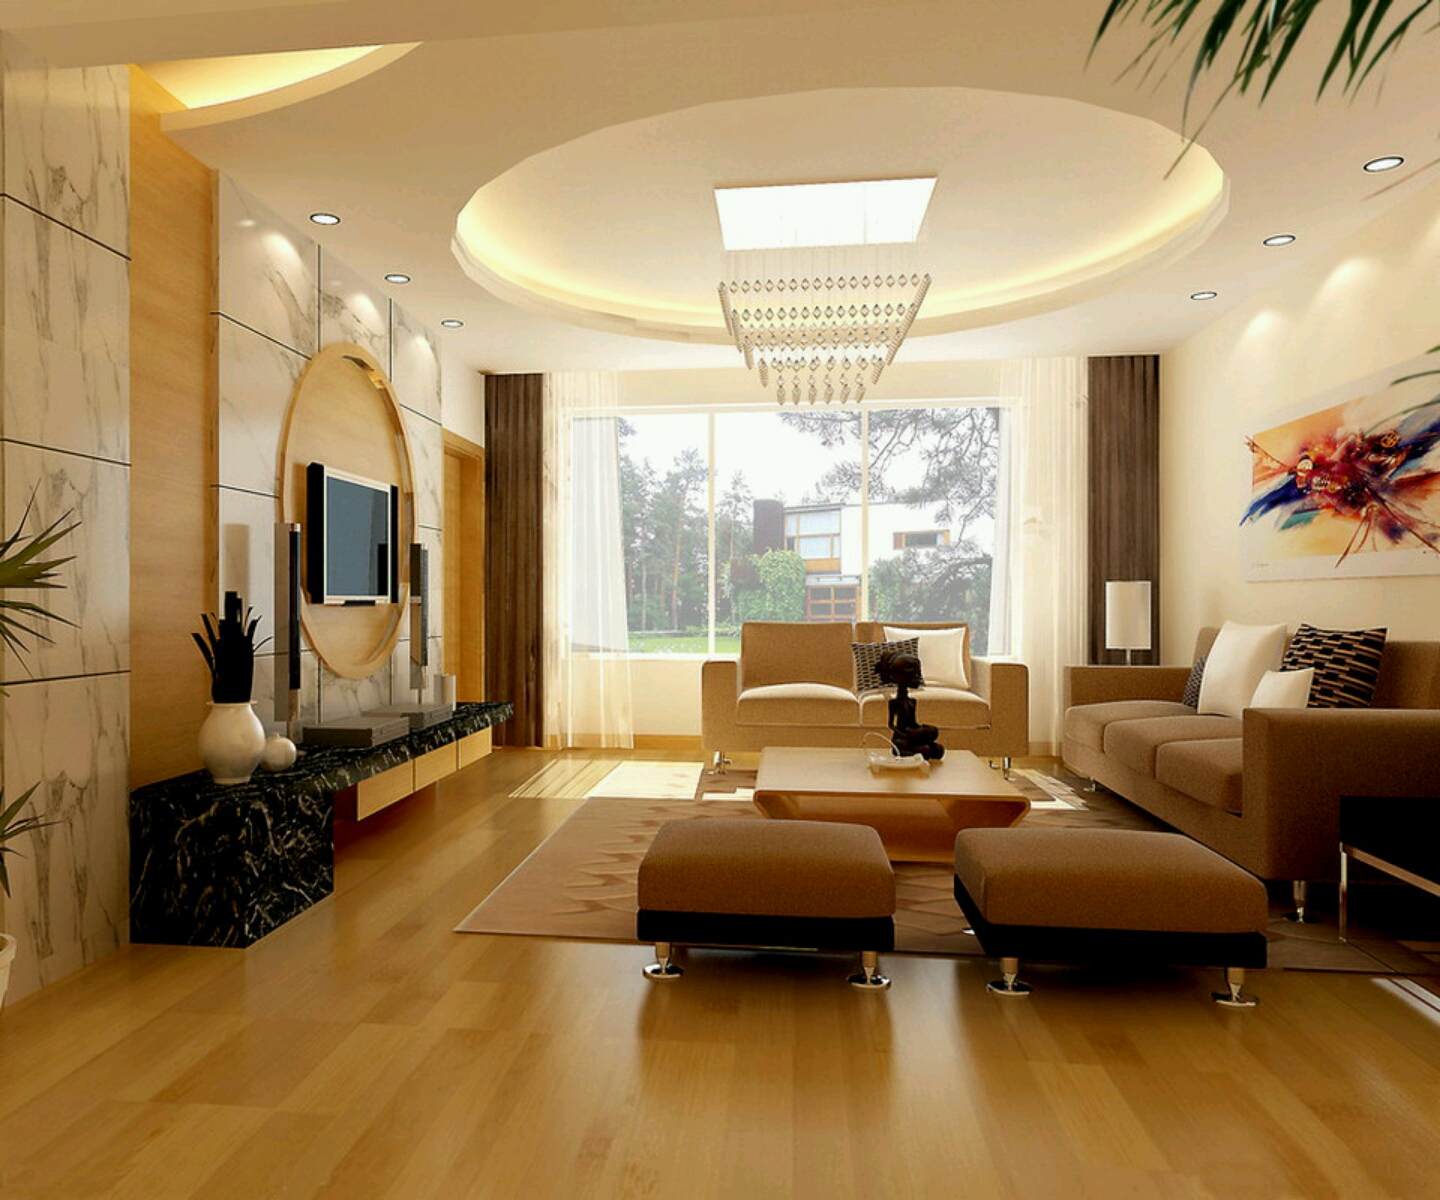 Ceiling Decorating Ideas | Dream House Experience